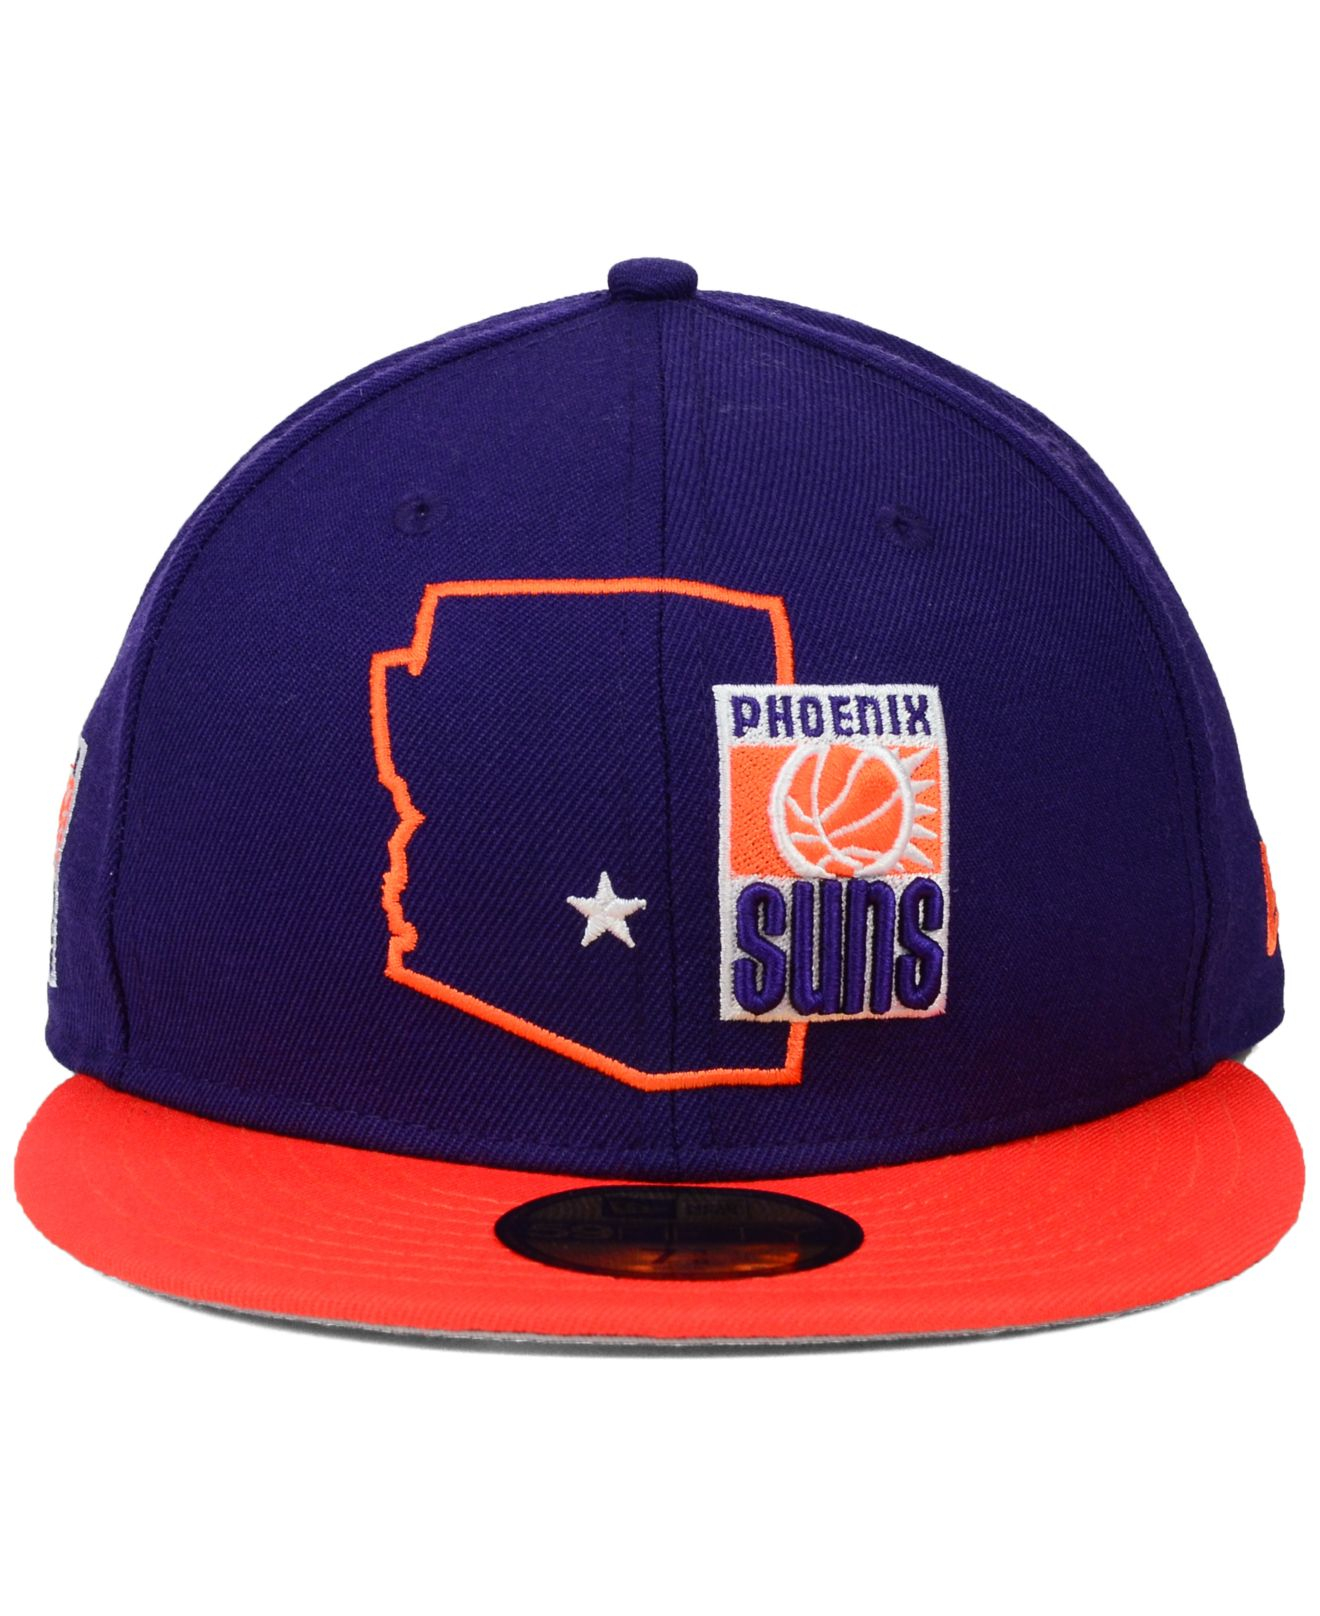 uk availability e0cae 22969 ... wholesale lyst ktz phoenix suns nba hwc states 59fifty cap in purple  for men 6ec41 9acd0